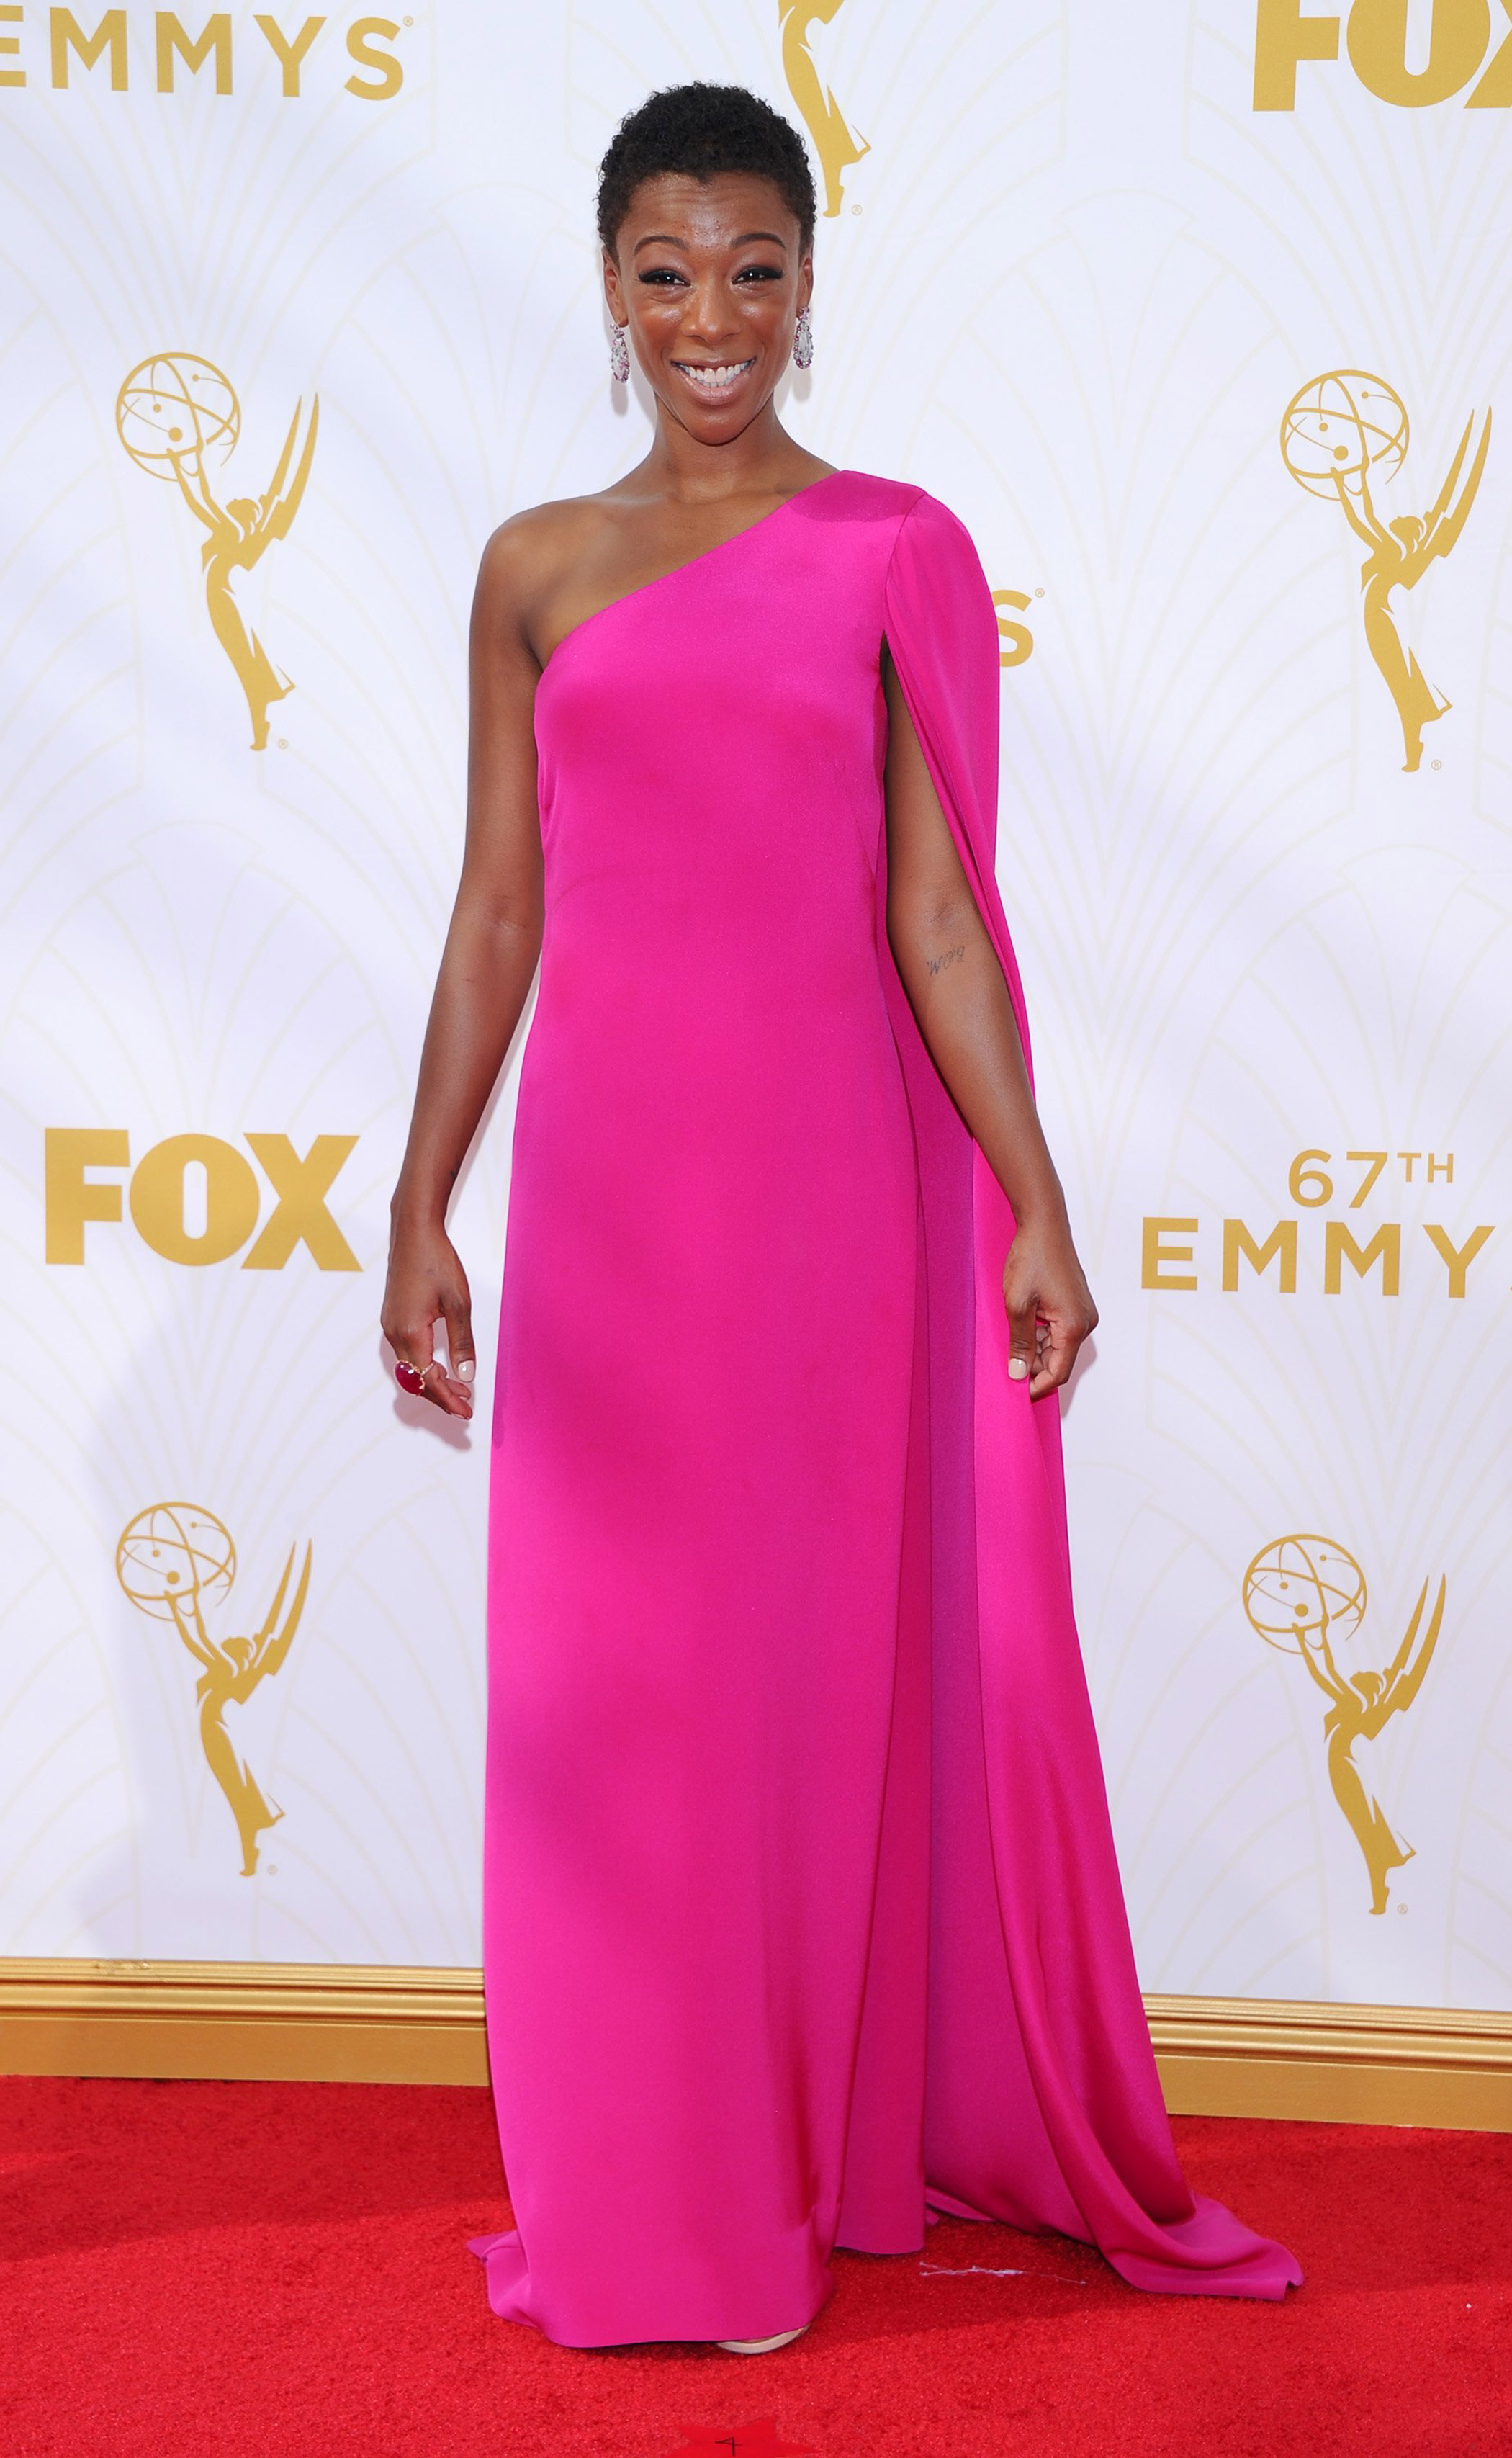 Samira Wiley at the 67th Emmy Award on Sept. 20, 2015 in Los Angeles.